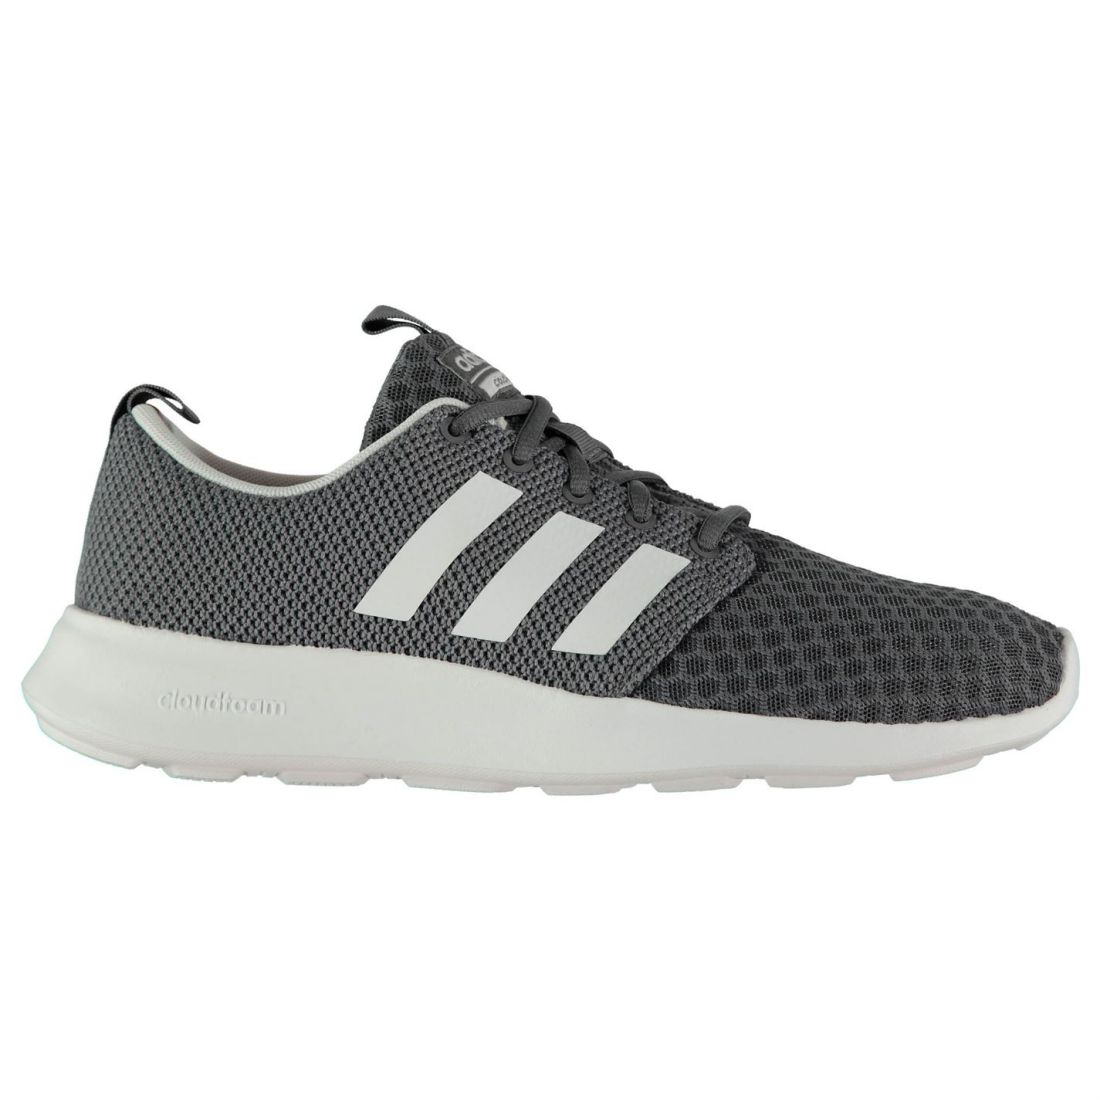 Adidas Cloudfoam Swift Trainer Mens Gents Runners Laces Fastened Ventilated